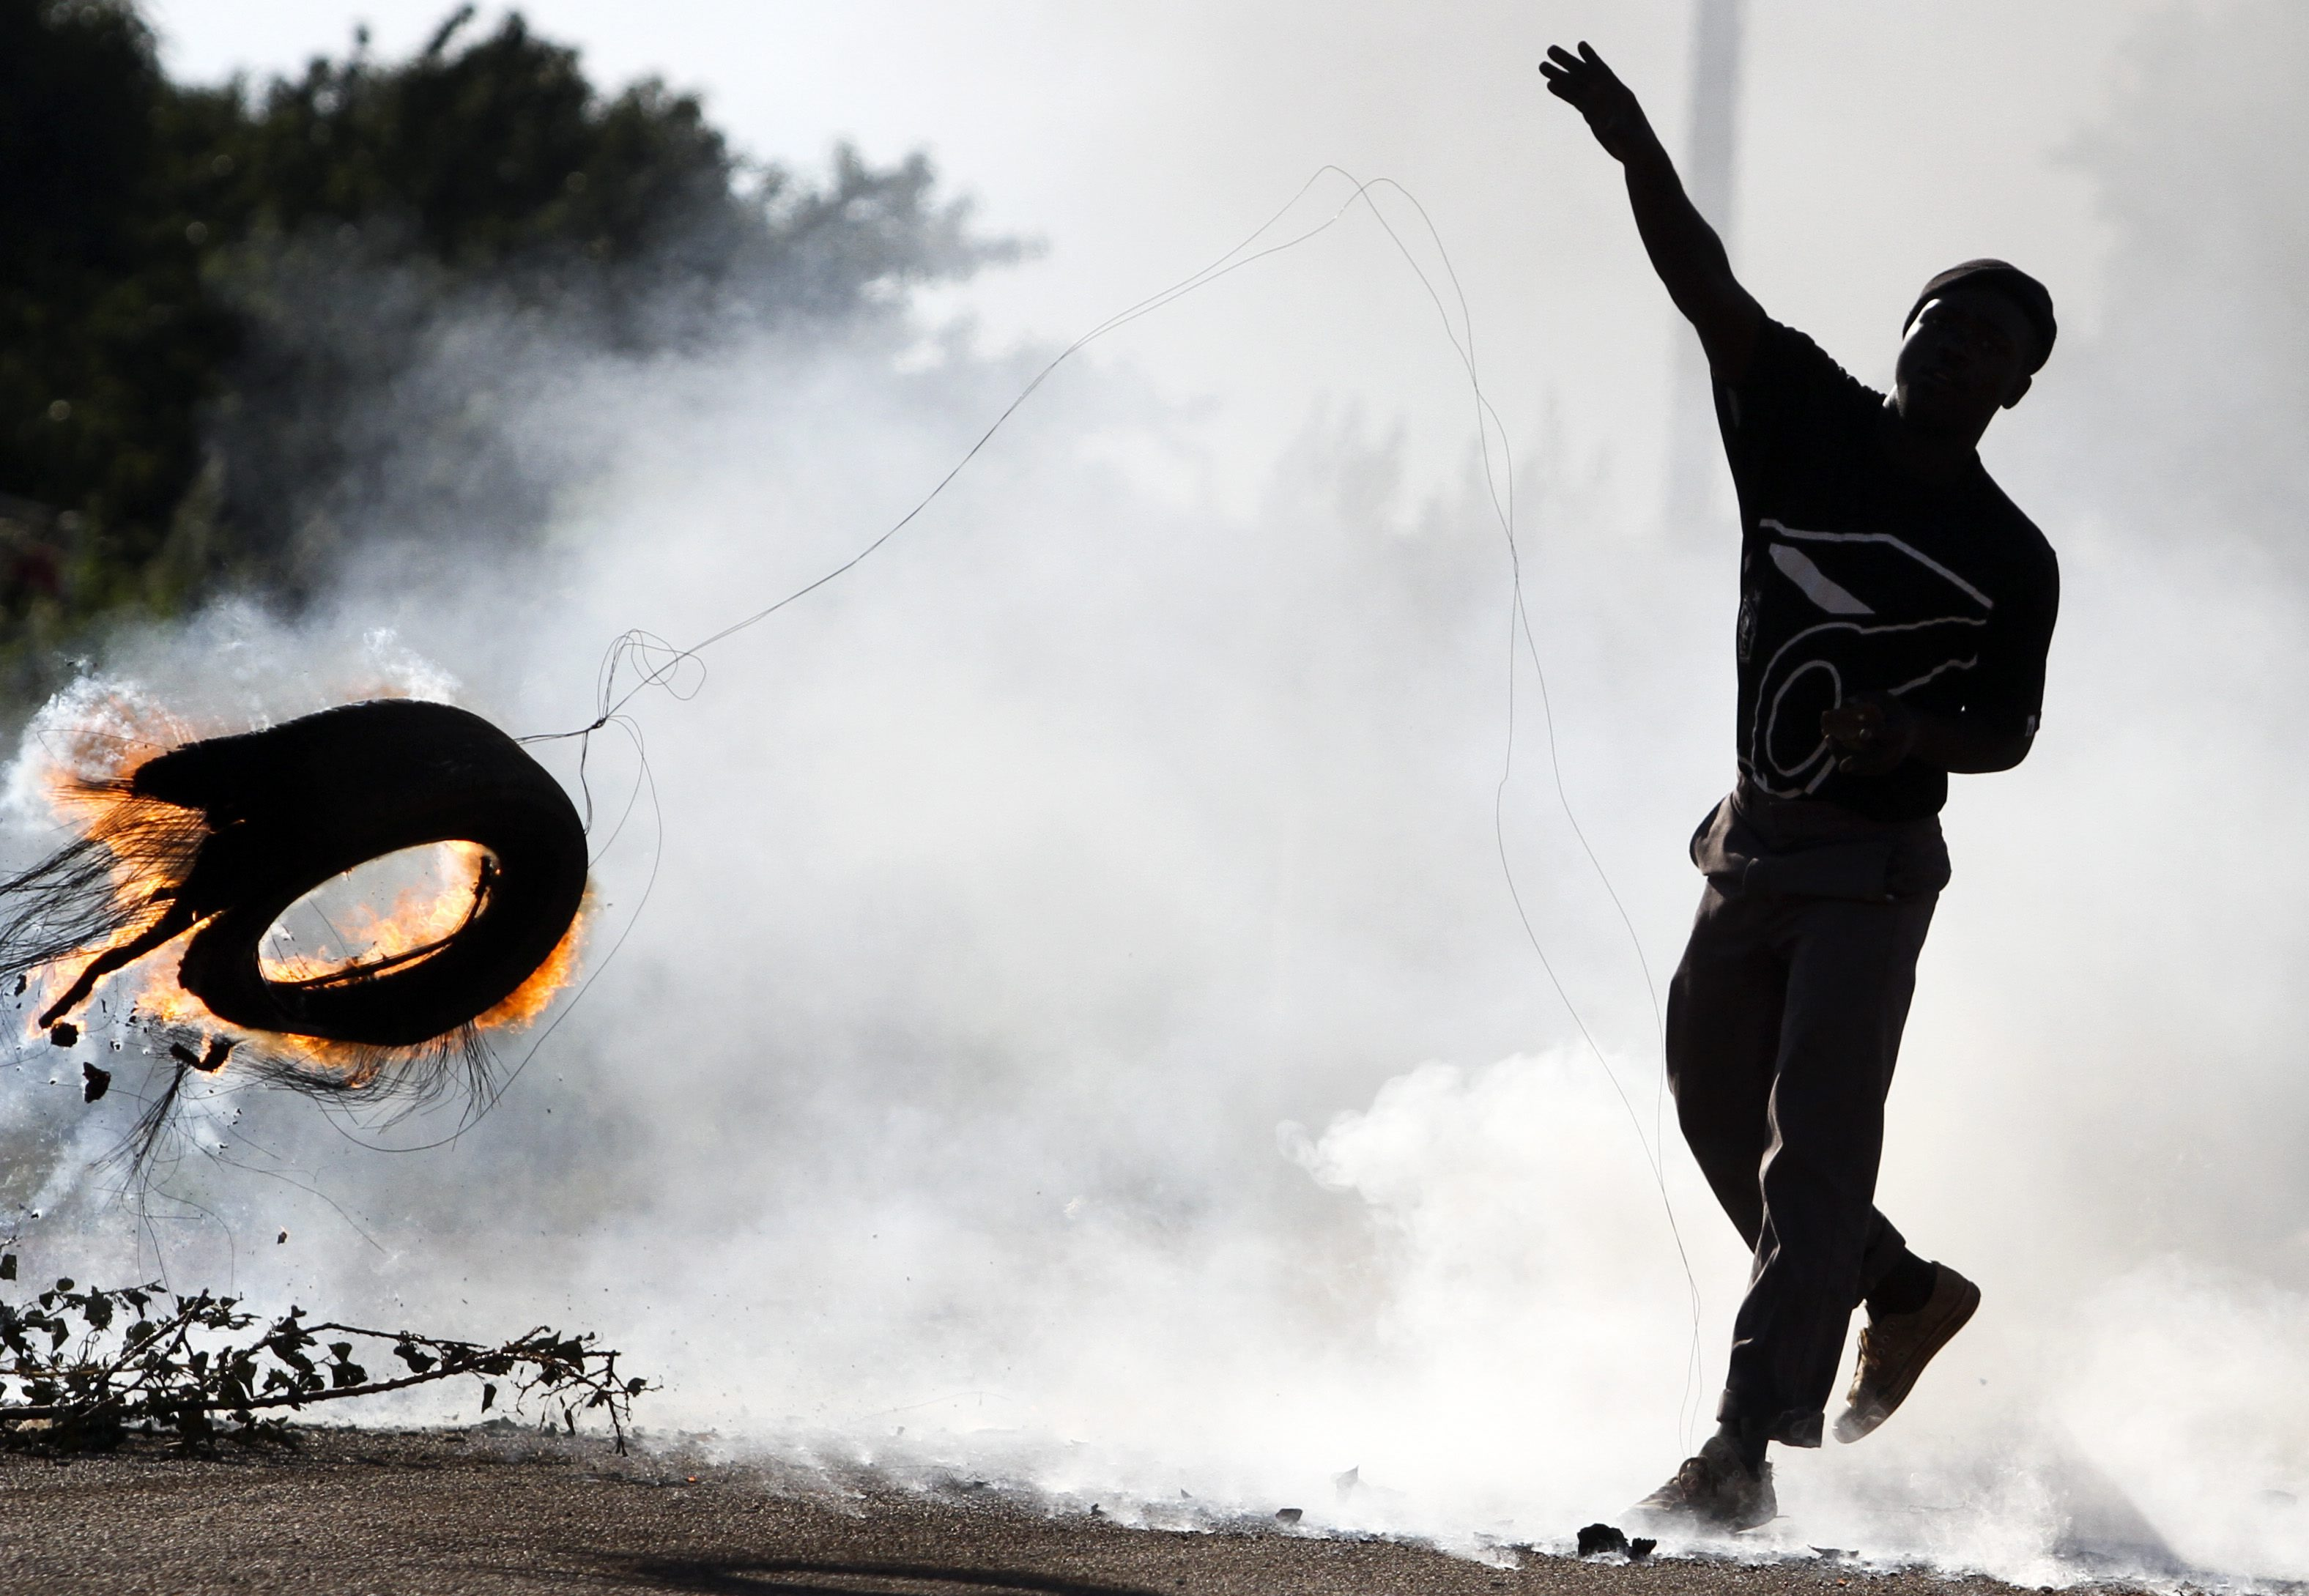 A South African man hurls a burning tire in Johannesburg during protests over squalid living conditions in 2010. Conditions for the poor are worsening around the world